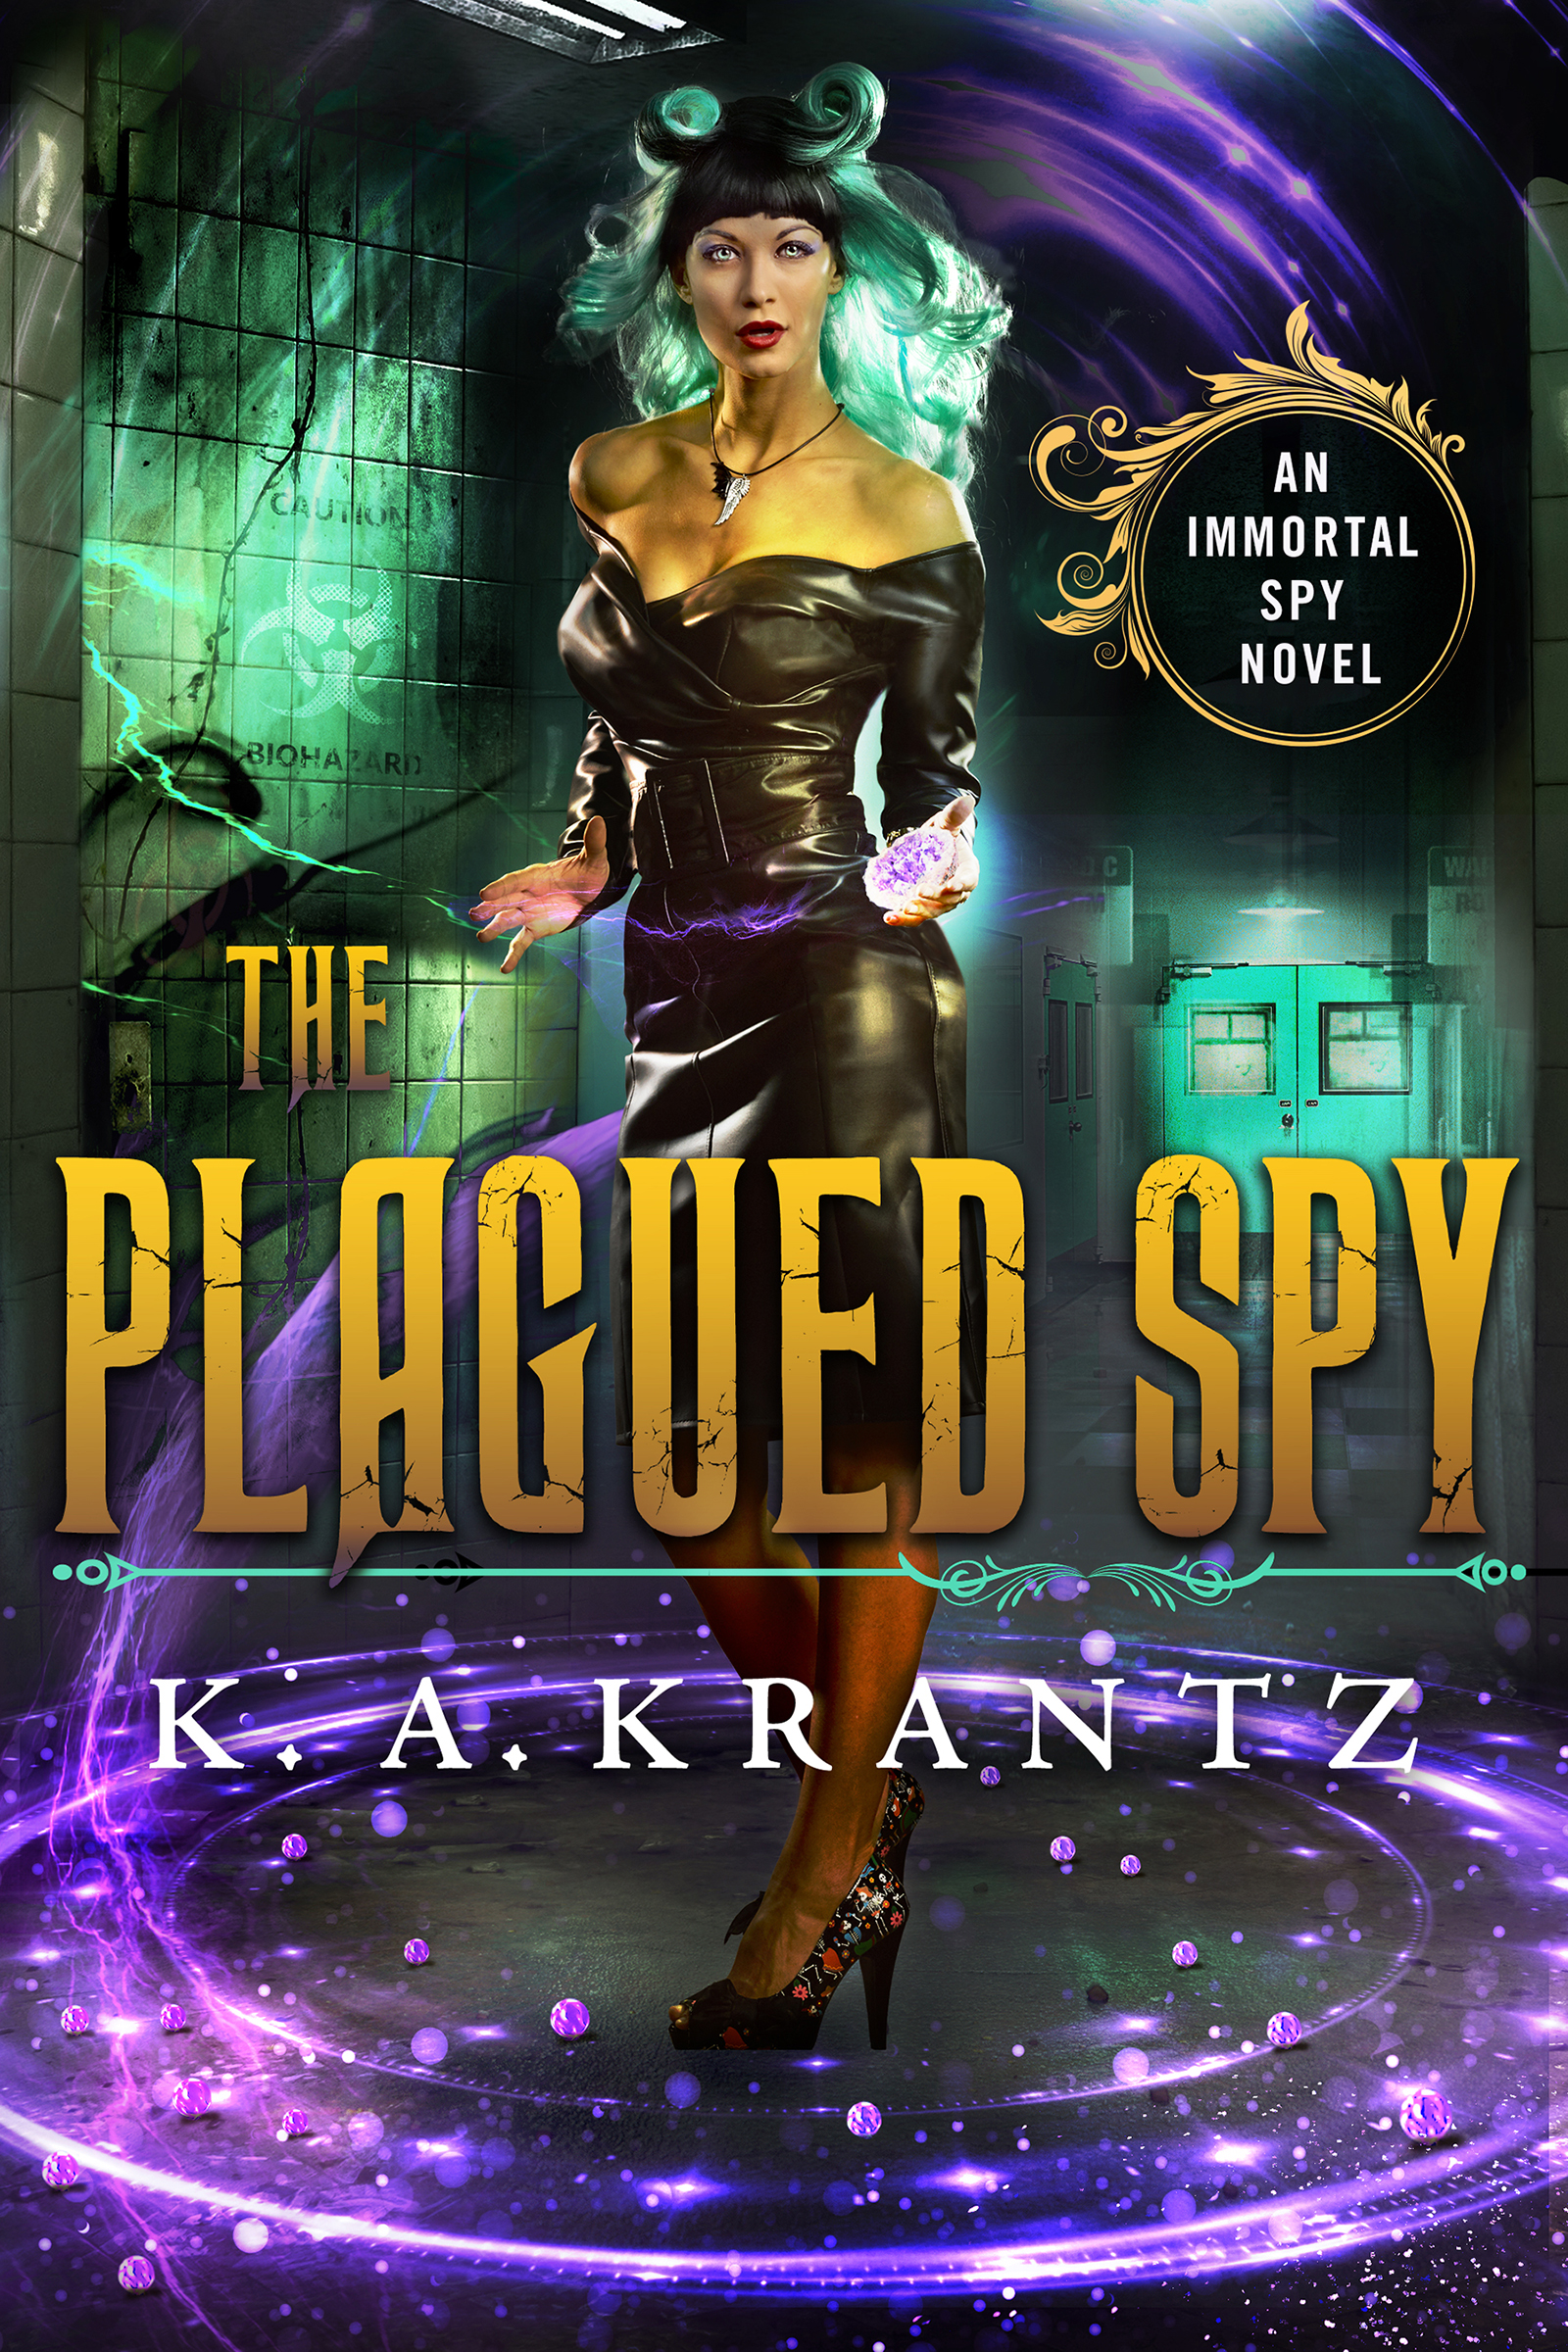 The Plagued Spy Cover